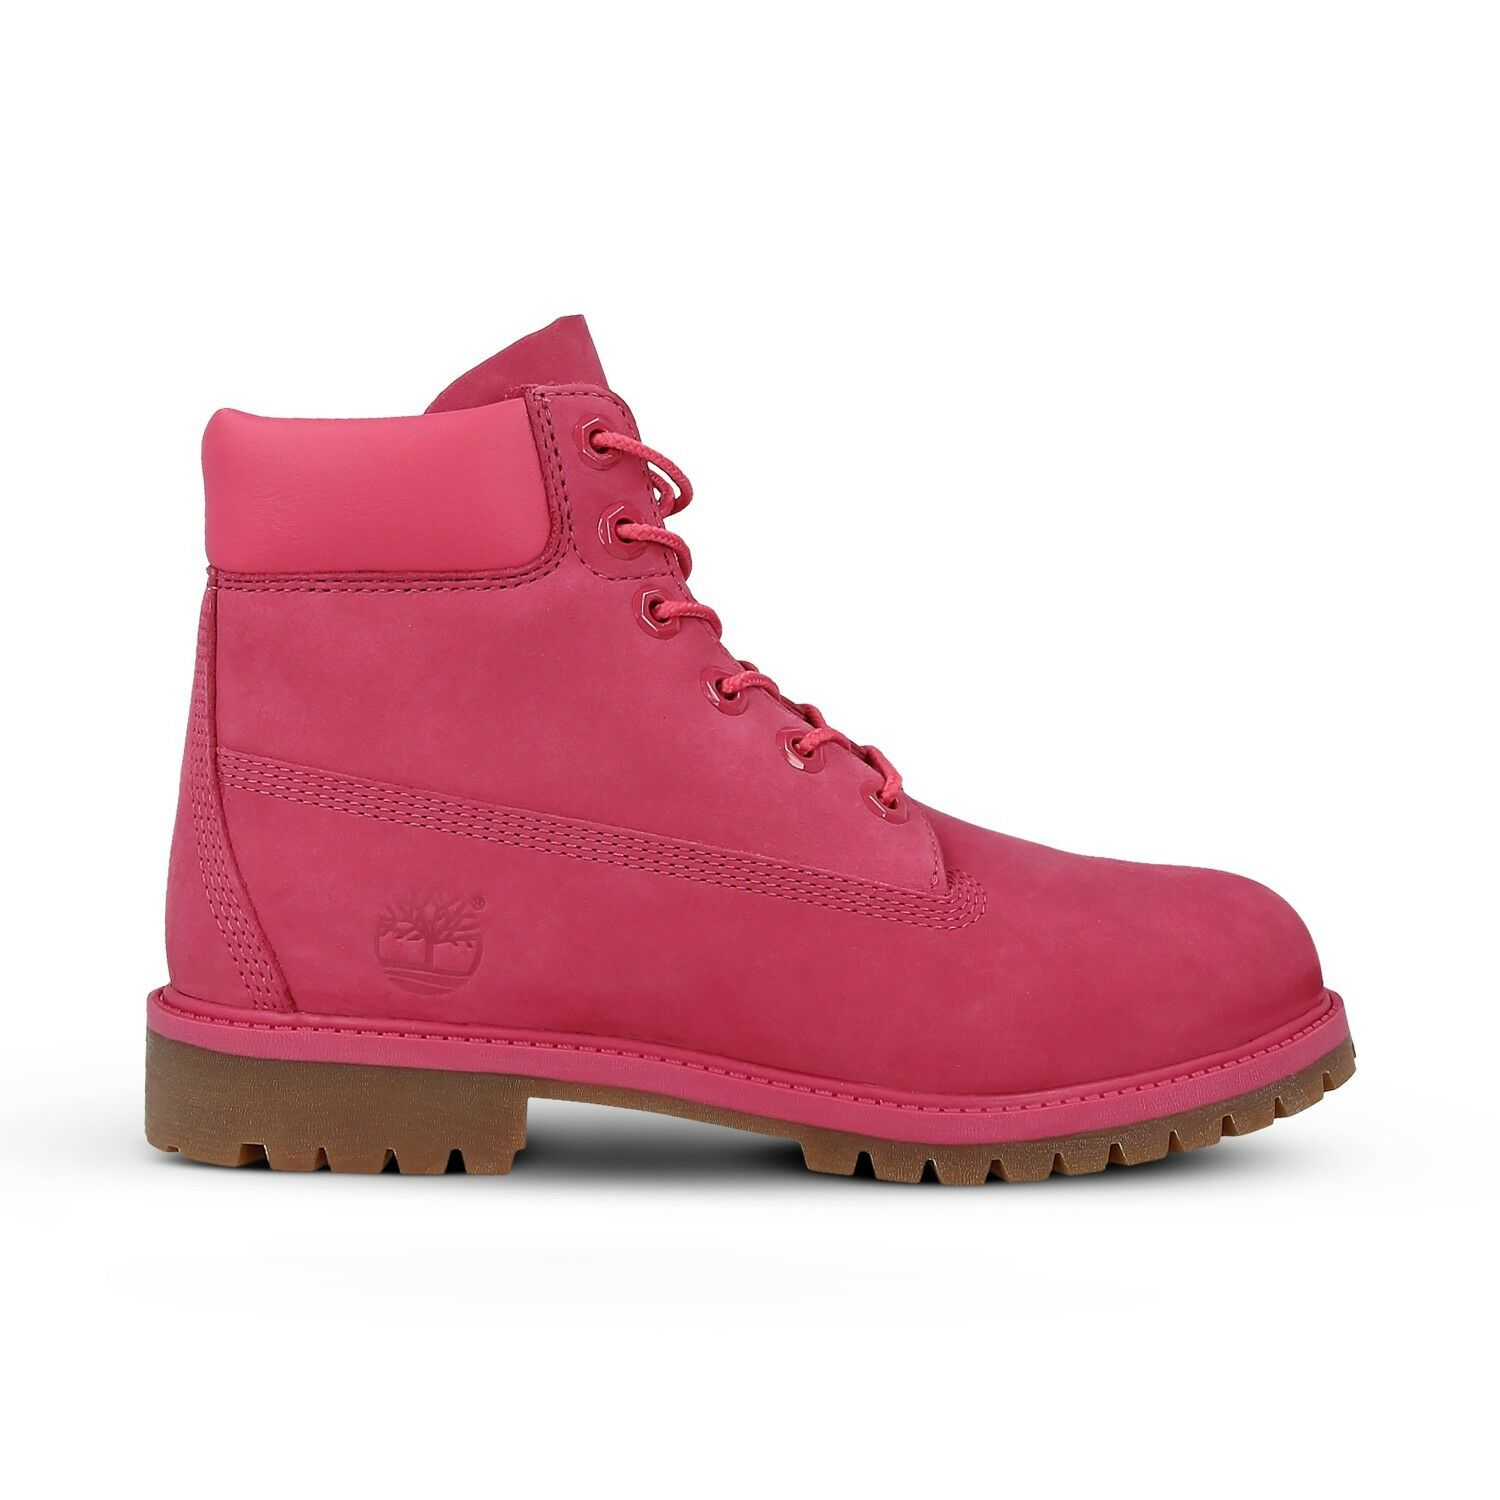 "Timberland Toddler's 6"" Premium Boots NEW AUTHENTIC Pink Red/Rose A1ODPH62"